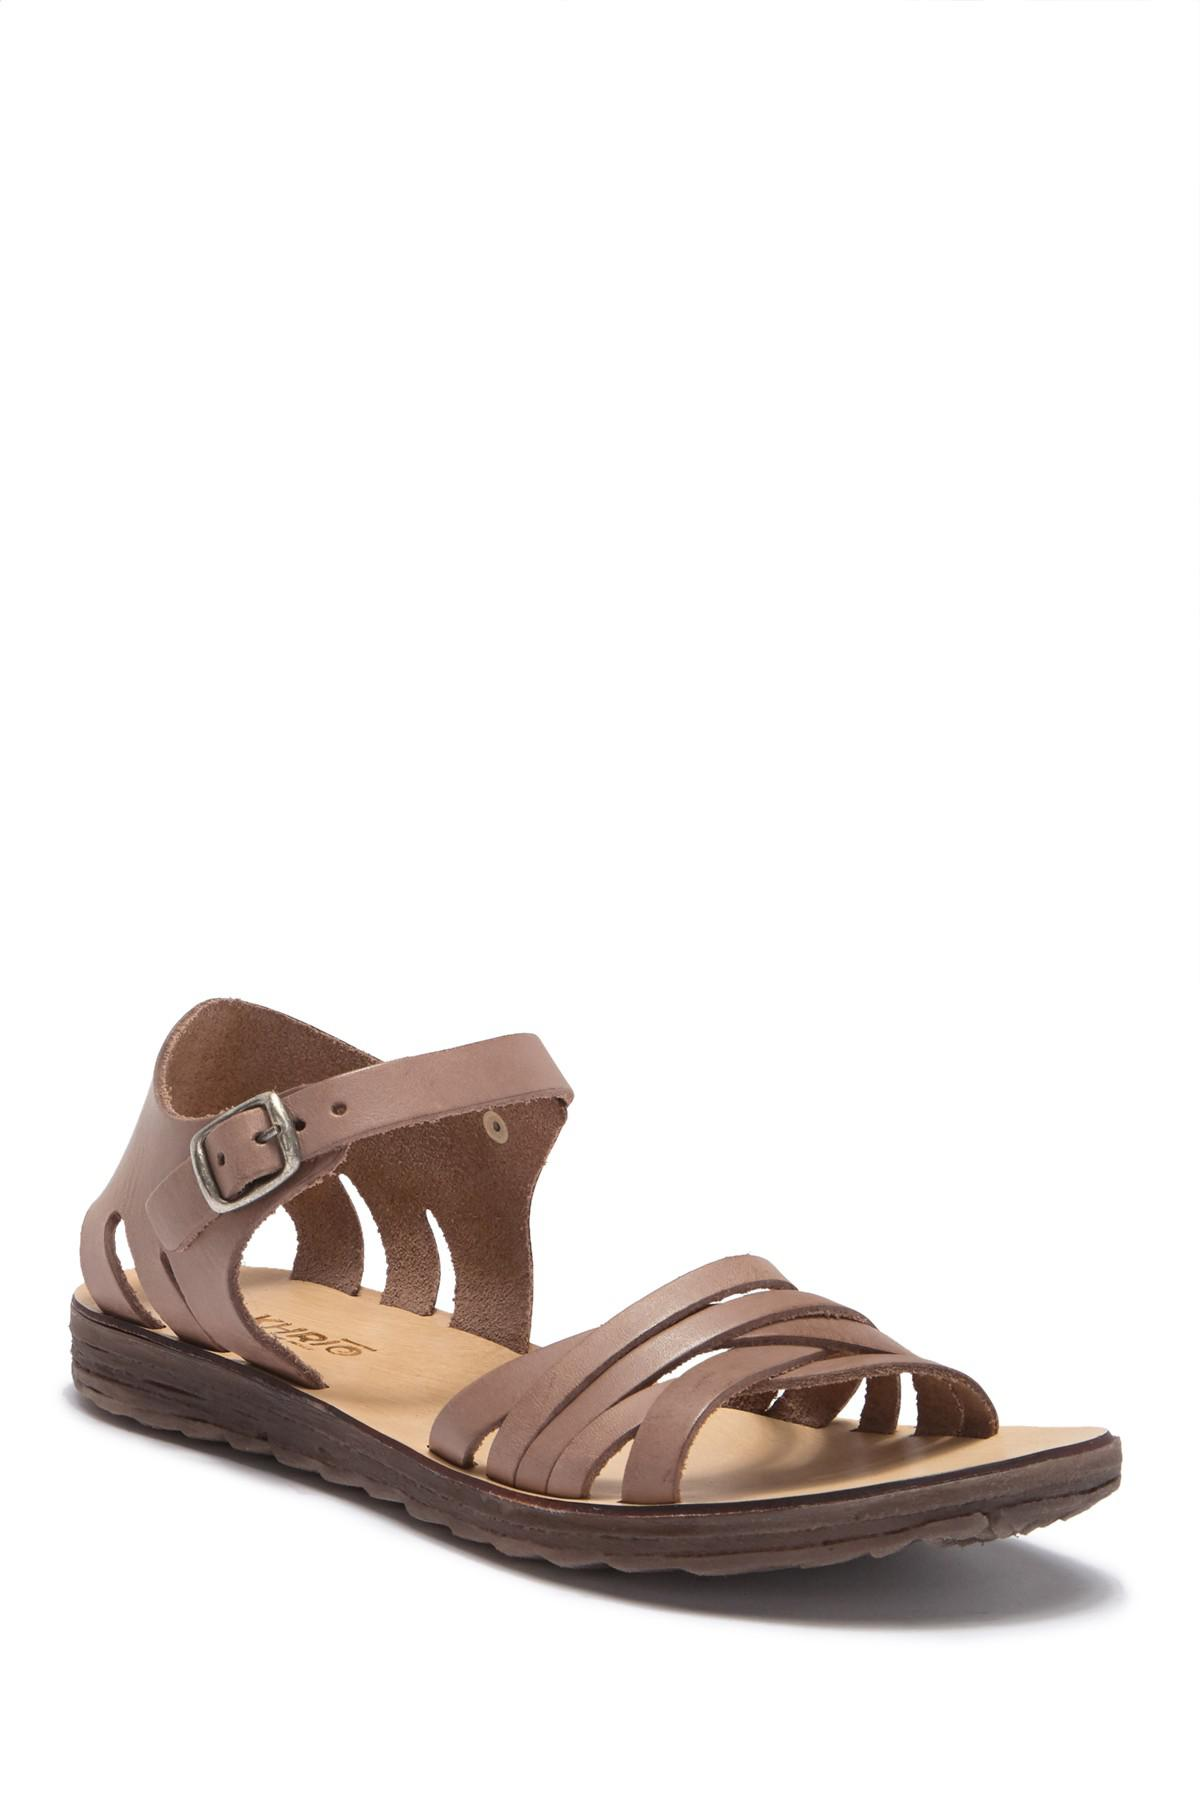 Khrio Ankle Strap Leather Sandal 1Lj1MdQmet